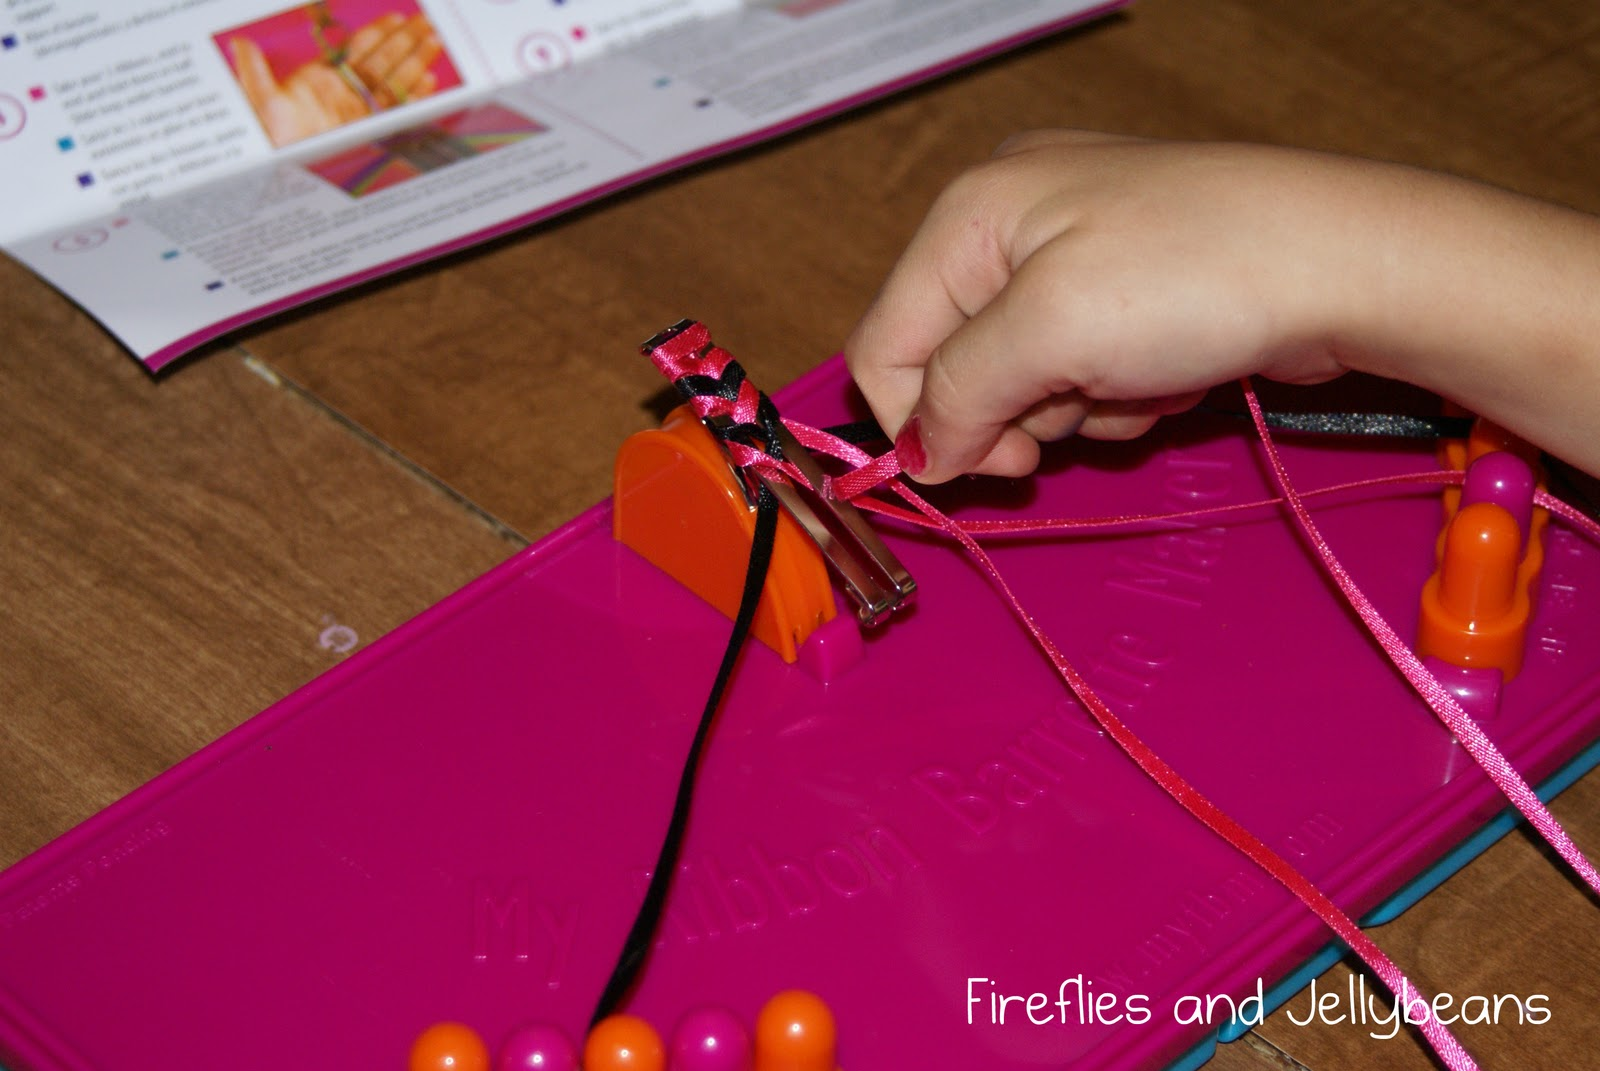 What A Flash Back! Turns Out You Can Make These Yourself (i Never Knew)  And It's Easy For Little Fingers With This Kit My Ribbon Barrette Maker